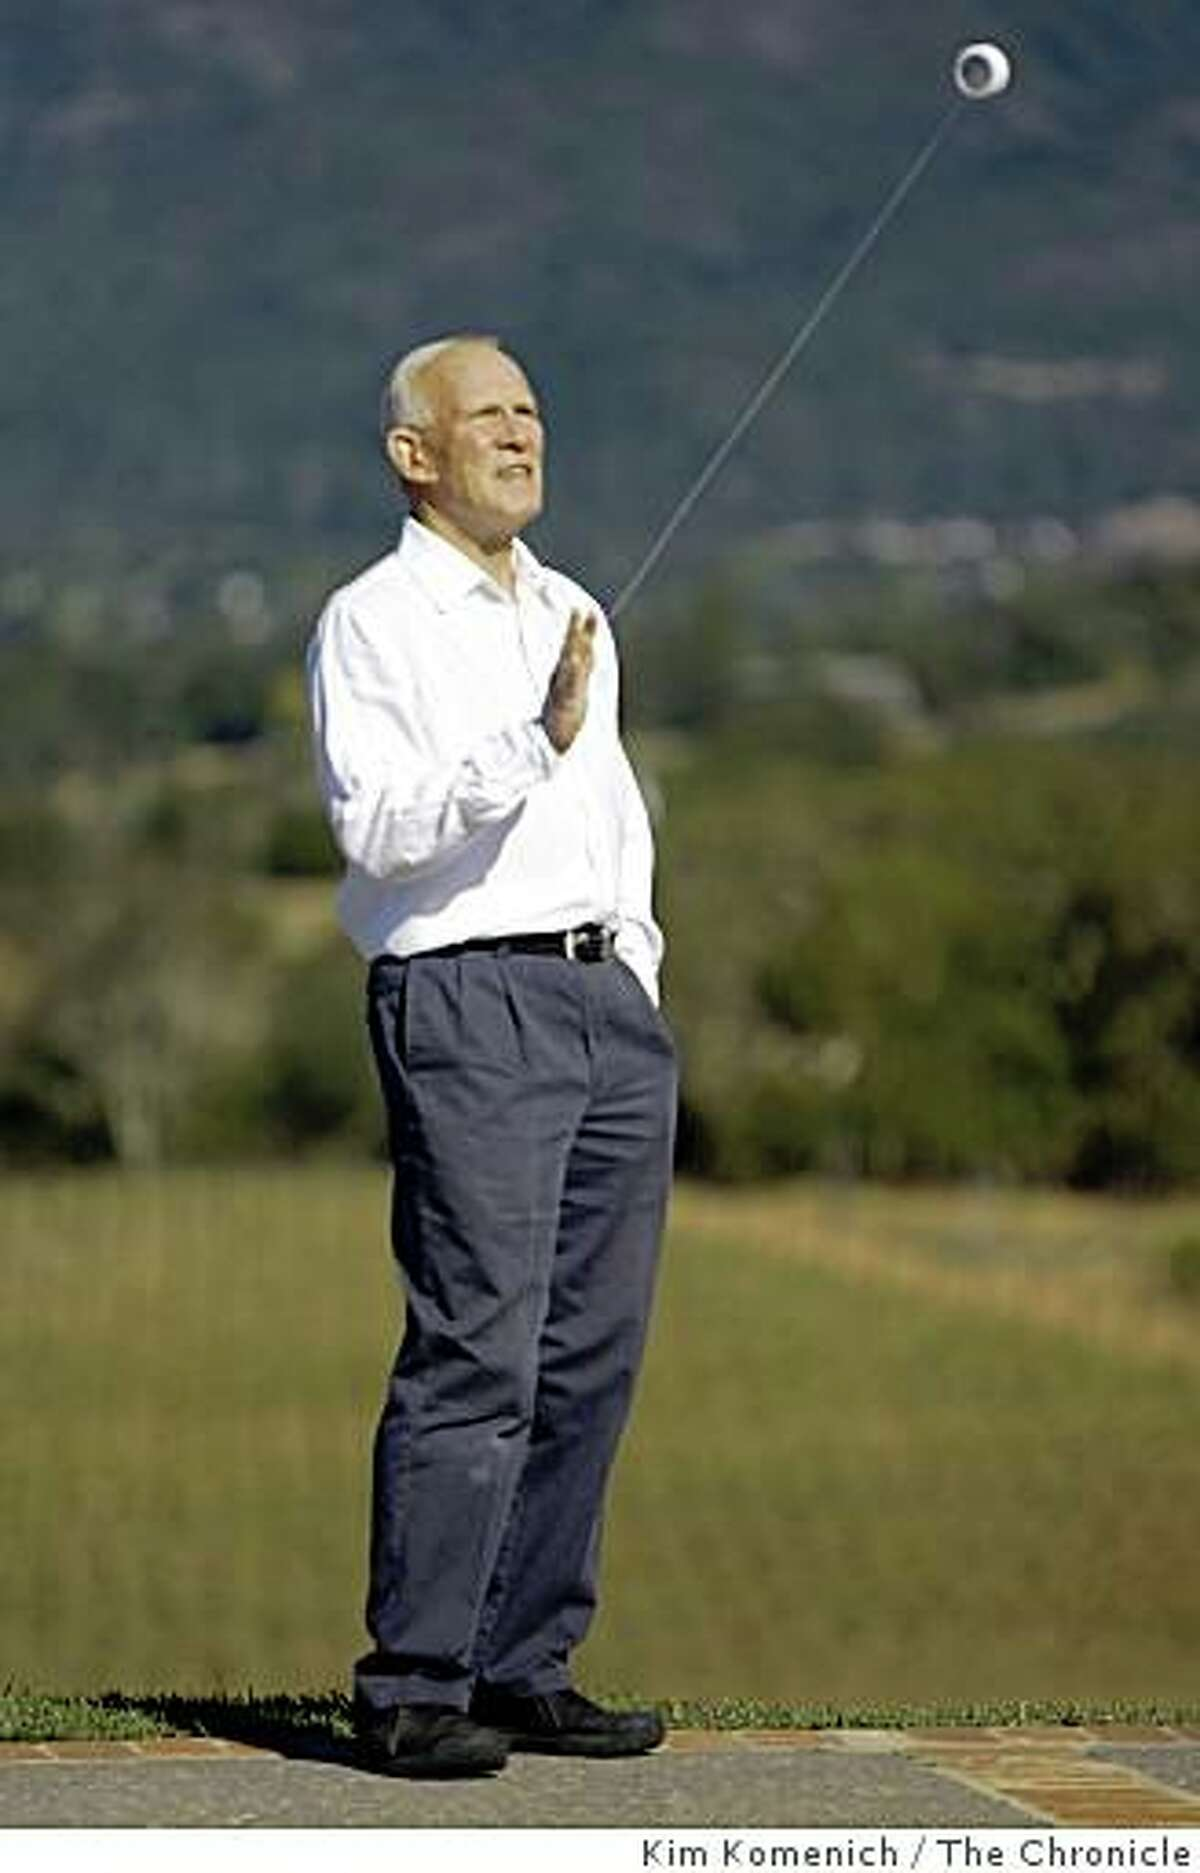 Comedian Tommy Smothers practices his yo-yo skills. He is photographed on Friday, Oct. 10, 2008 at his Kenwood, Calif., home.